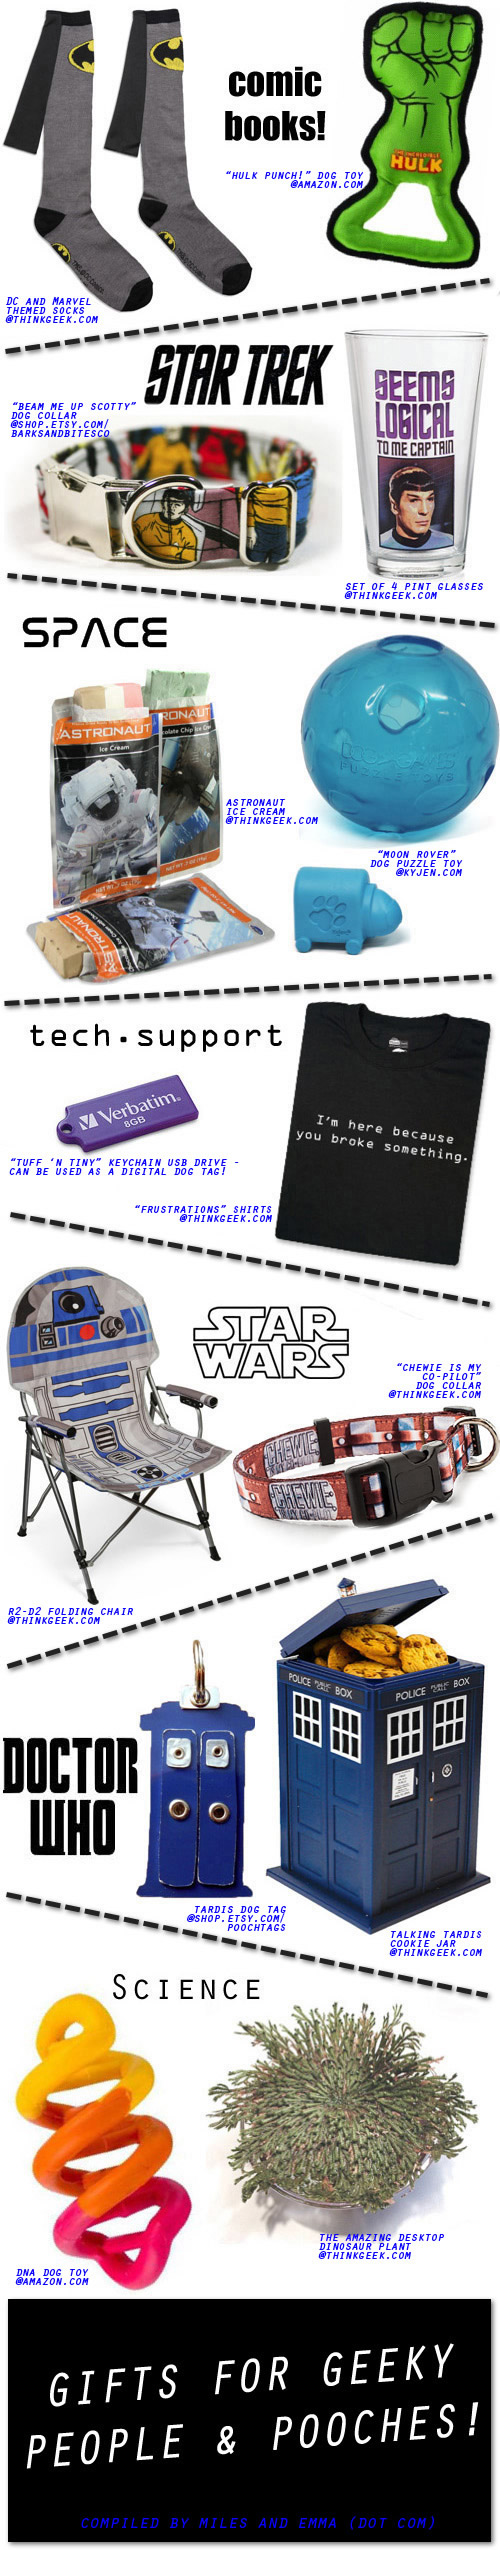 Gifts for Geeky People & Pooches!